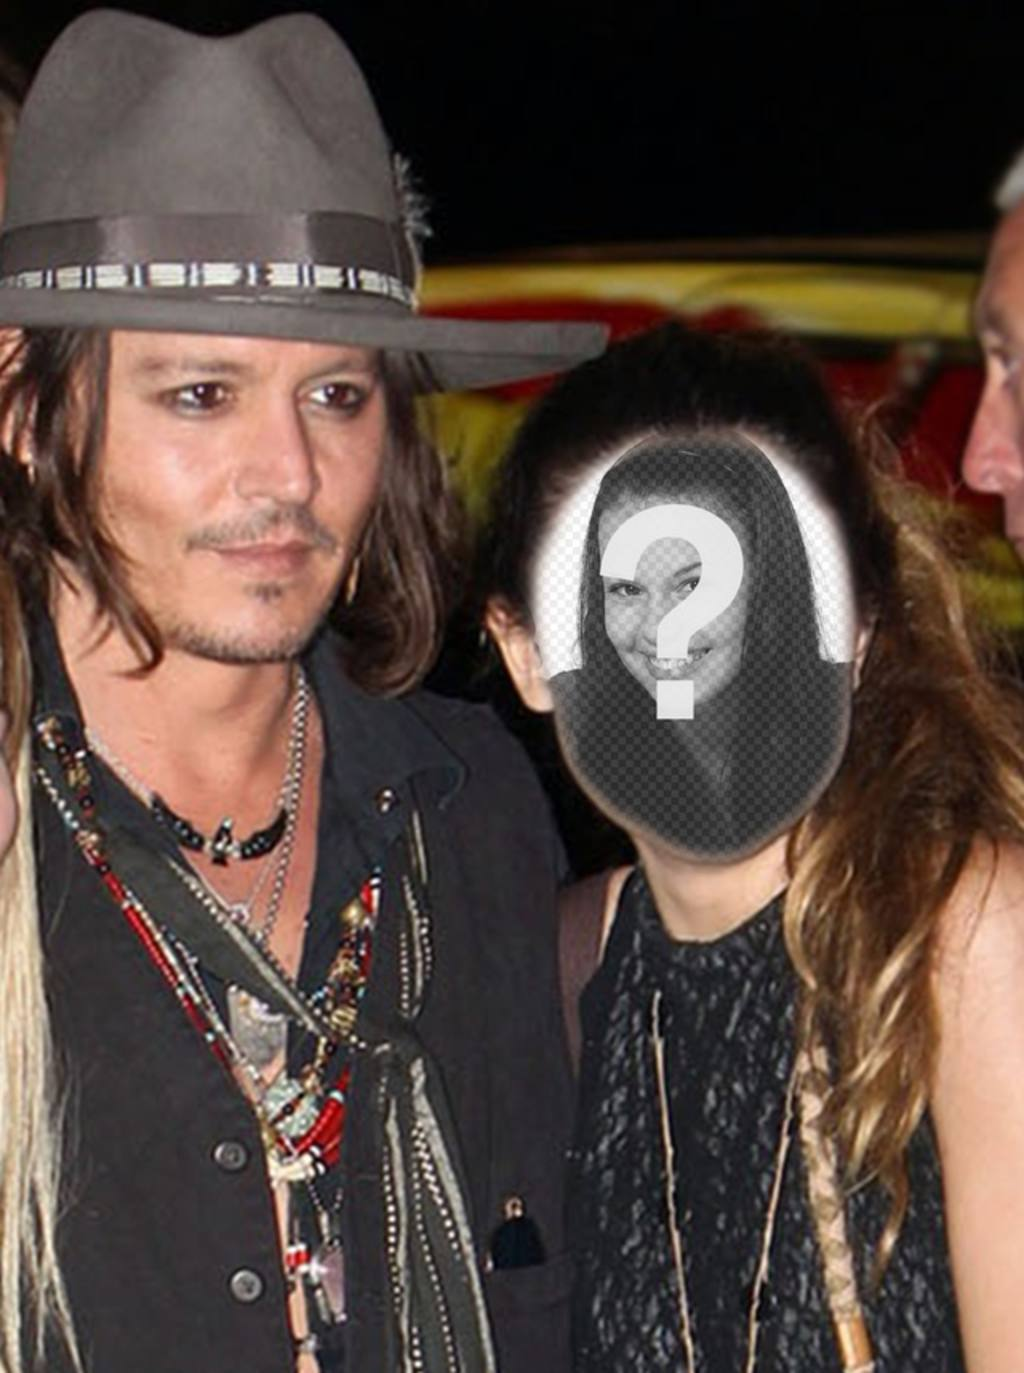 Photomontage with Johnny Depp to get a picture with him and write some text on it online